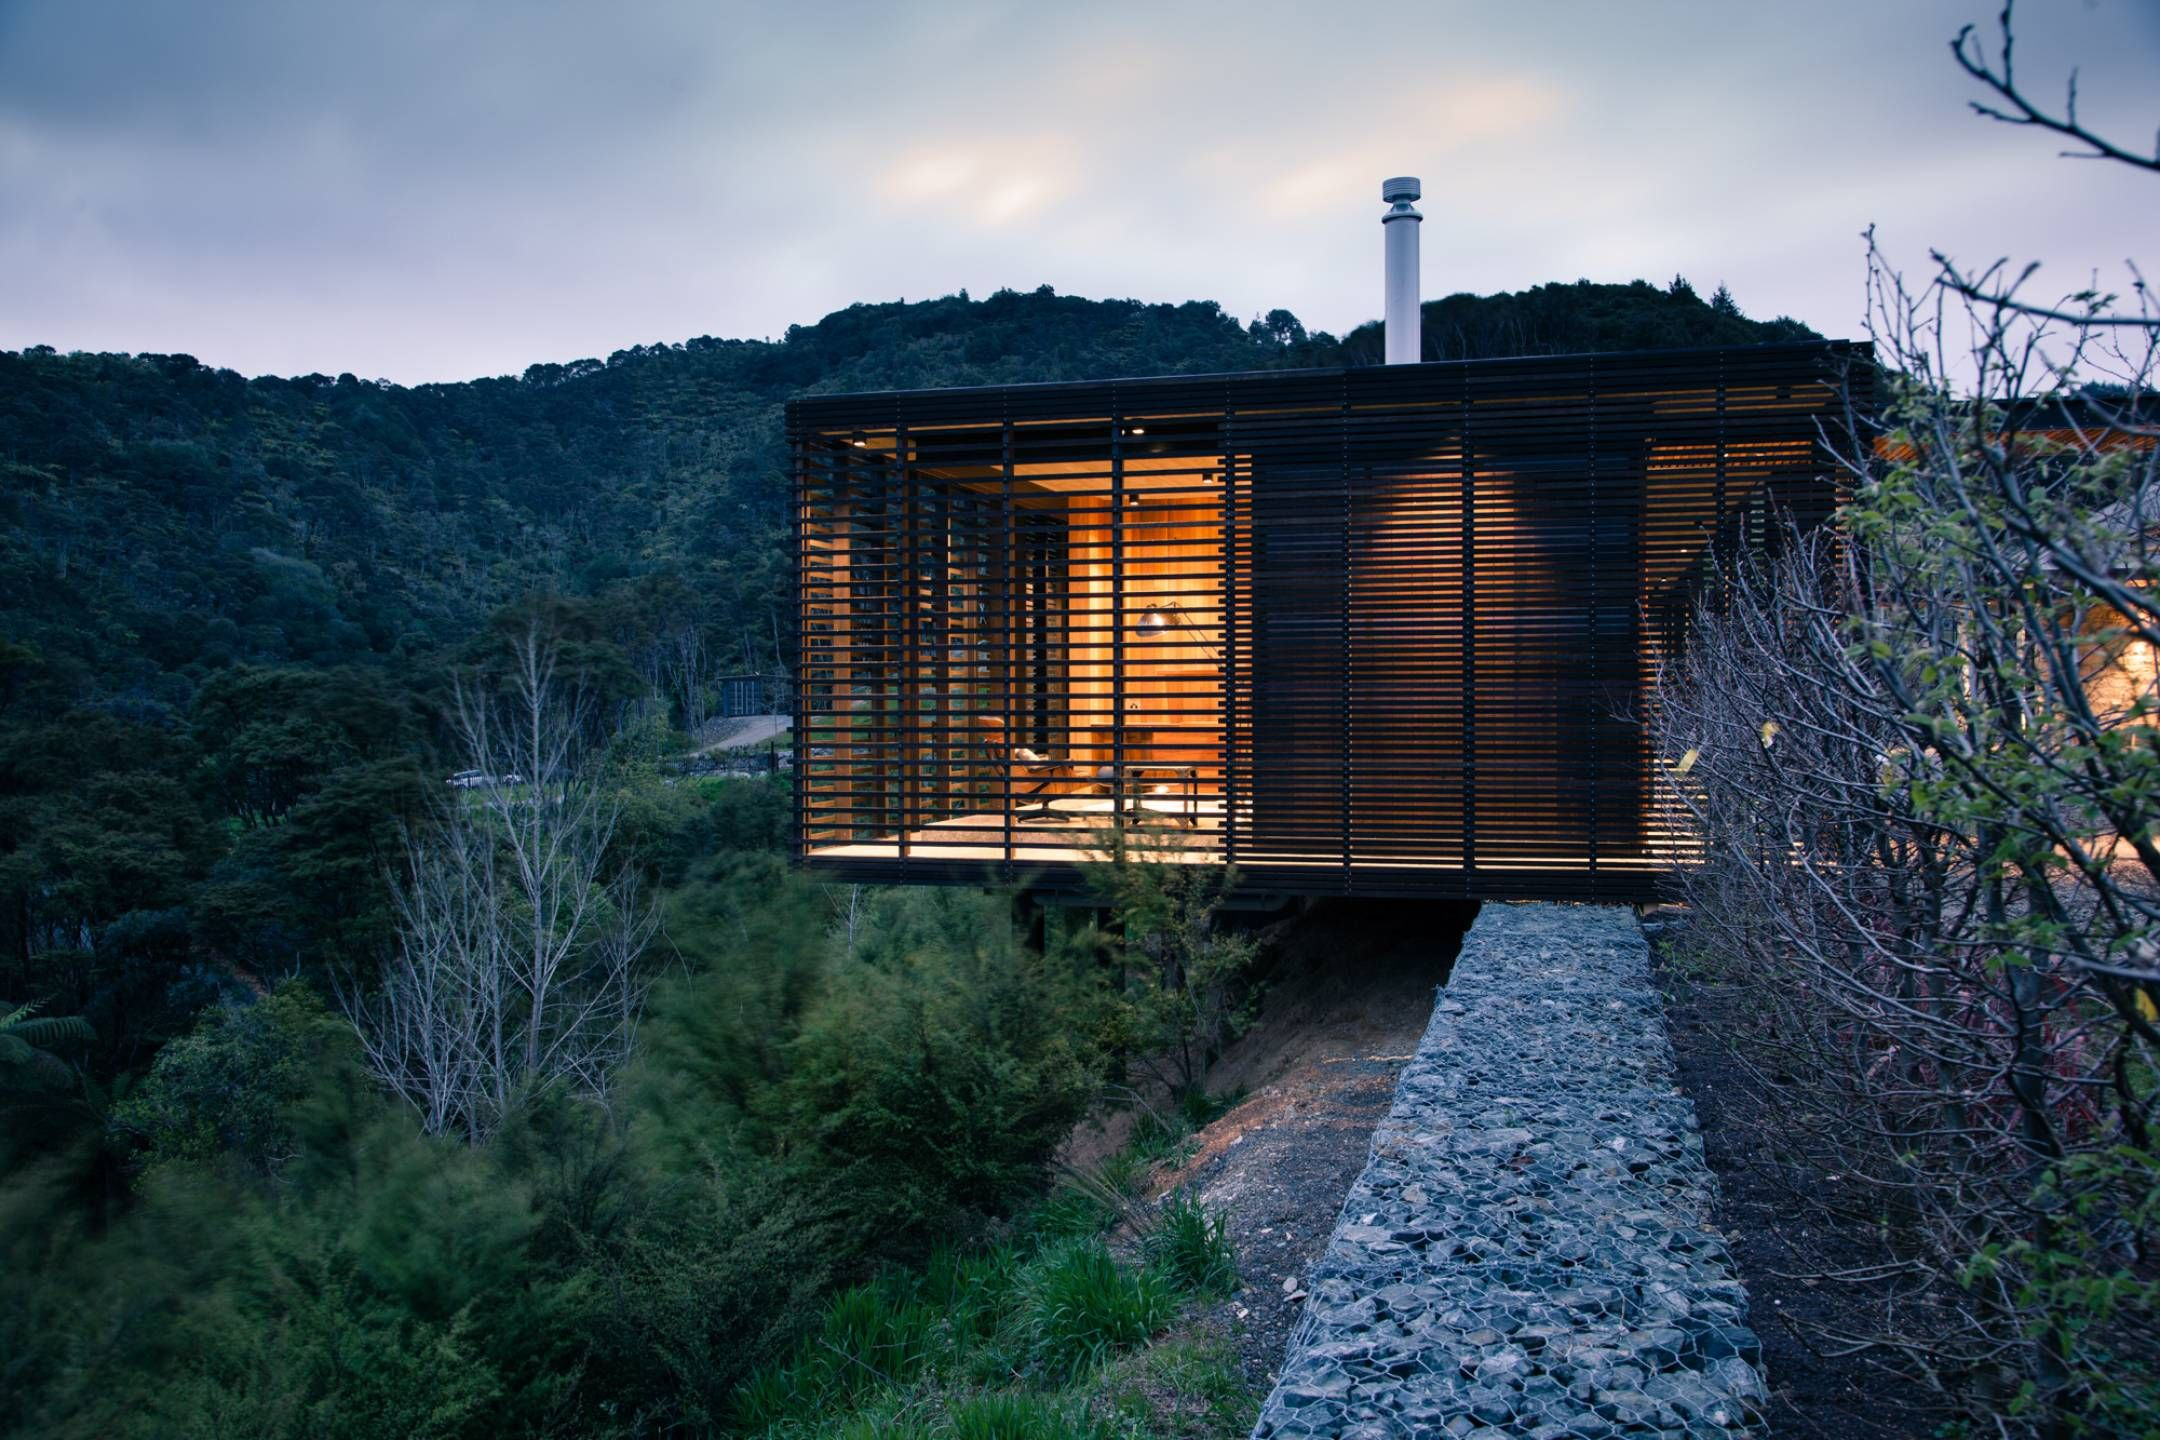 Pitched Roof House by Chenchow Little | Architects and Architecture